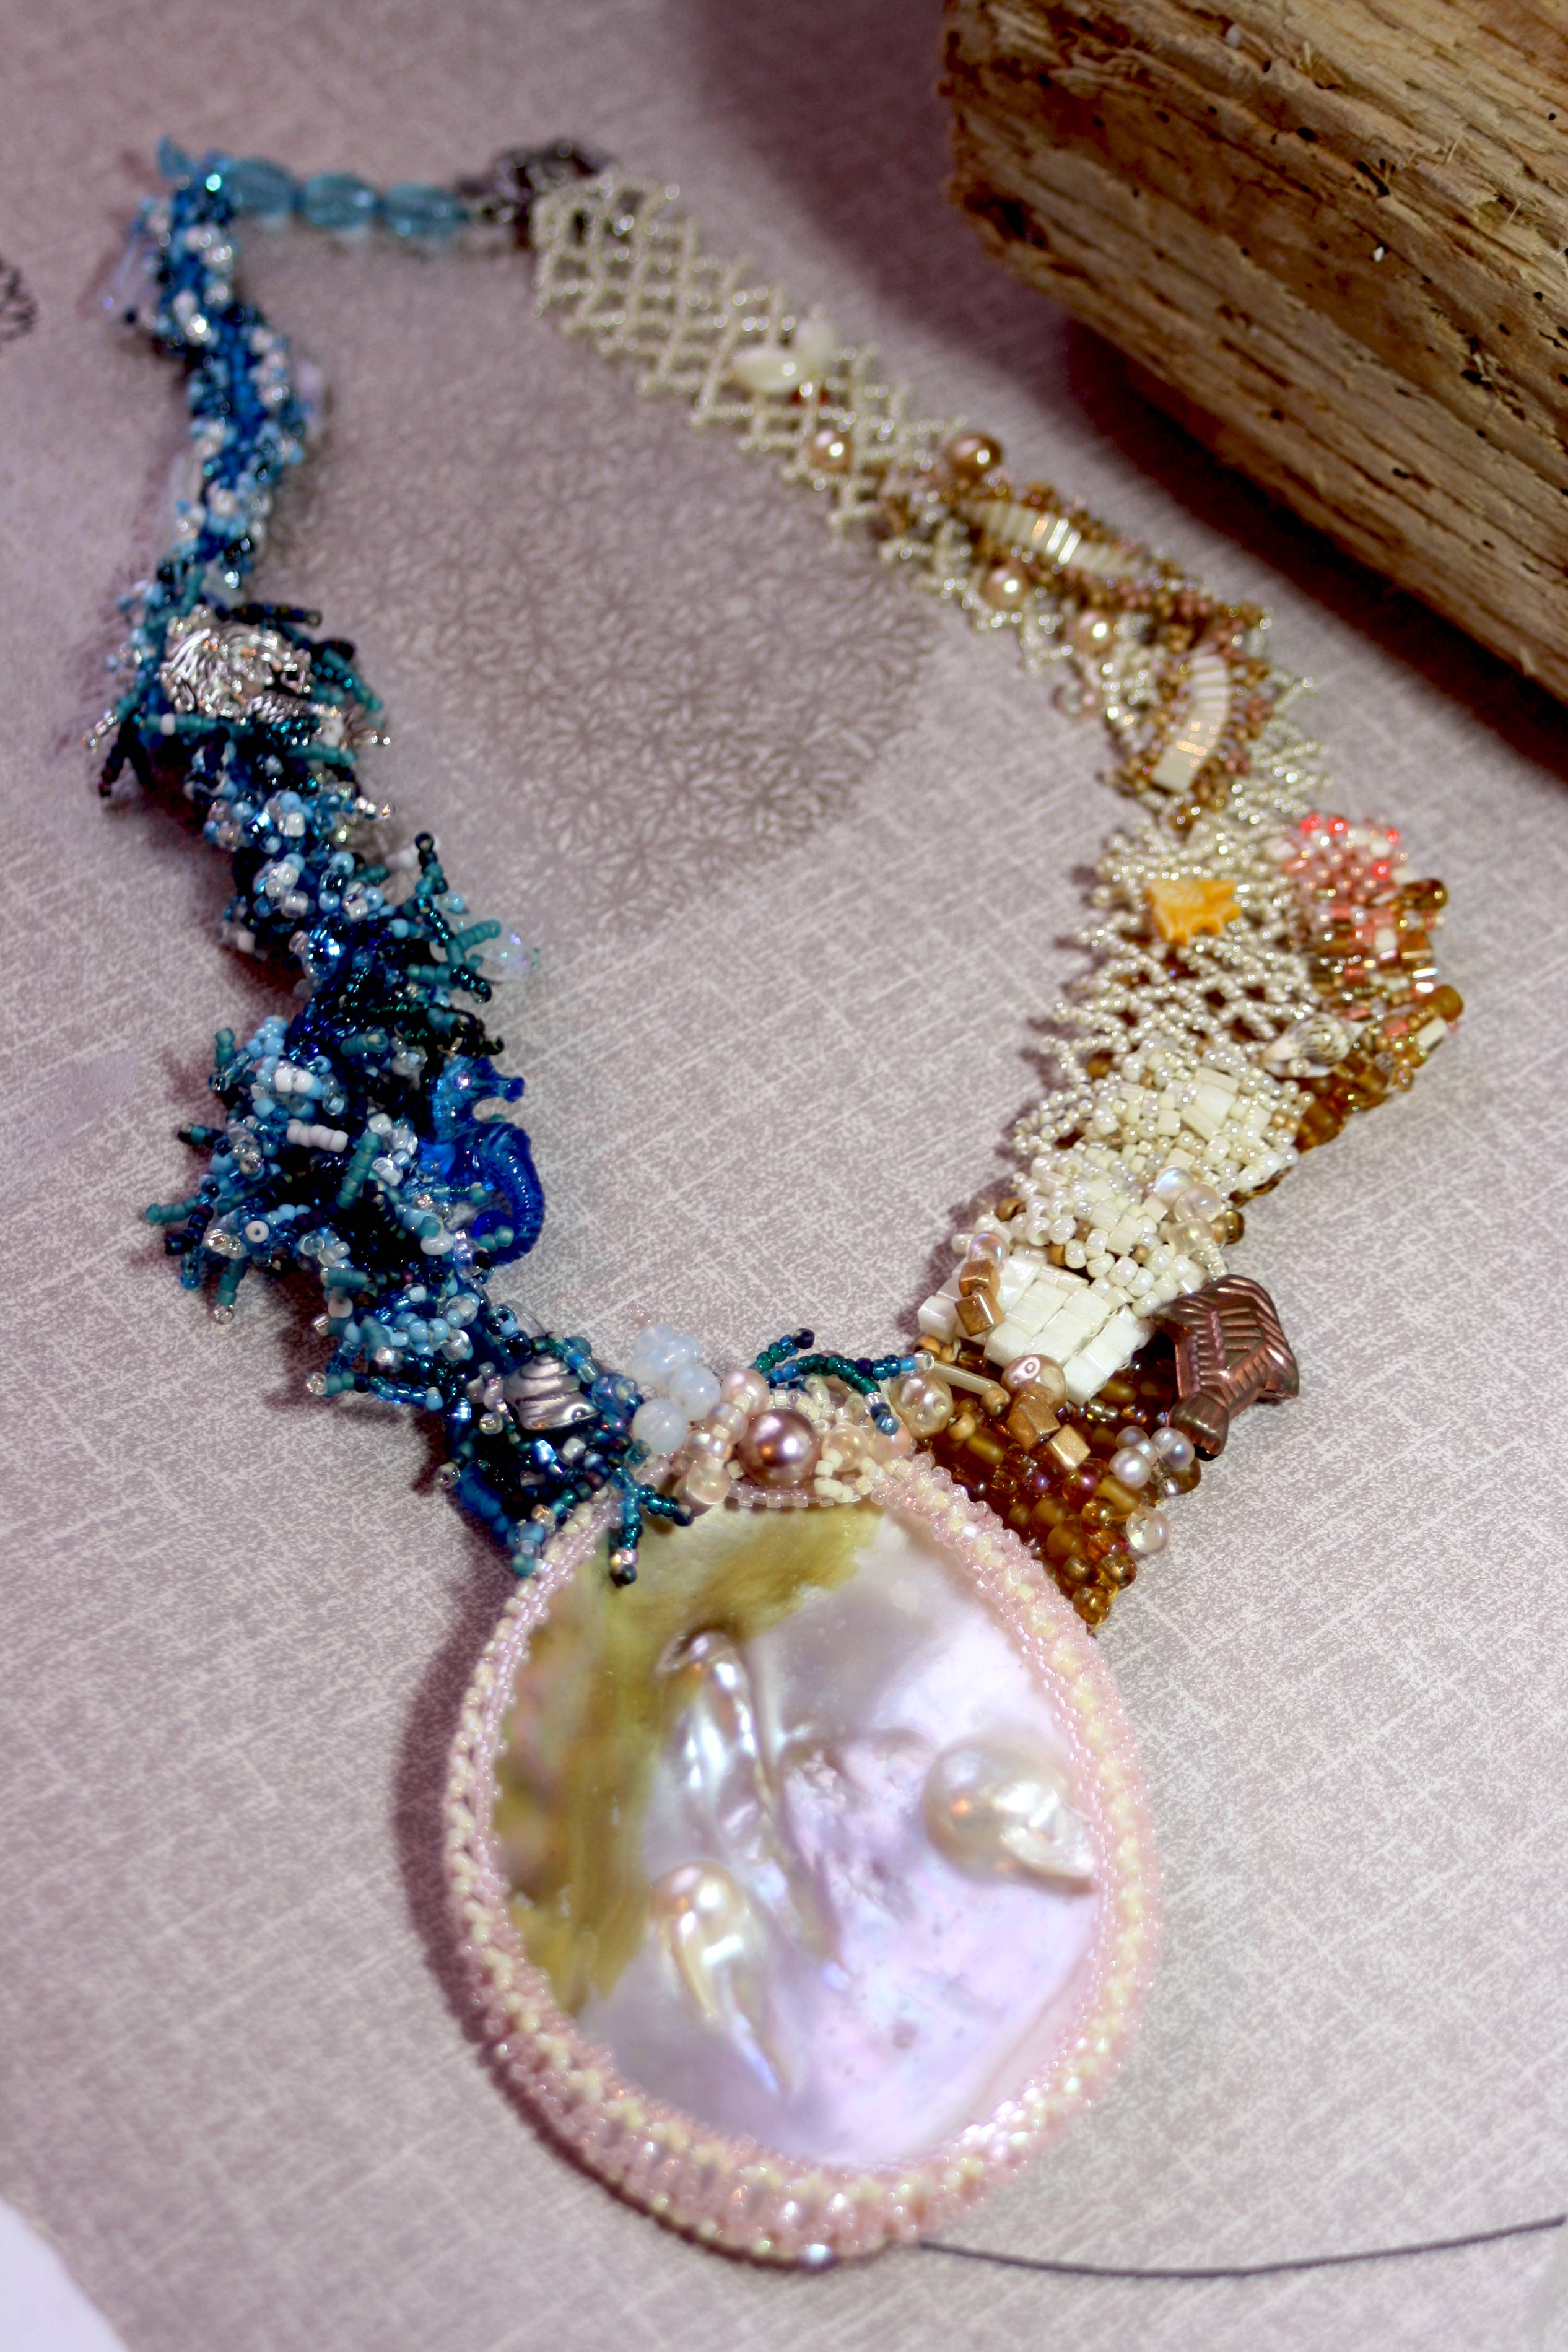 large pearl focal pendant with cream and blue seed bead necklace strap